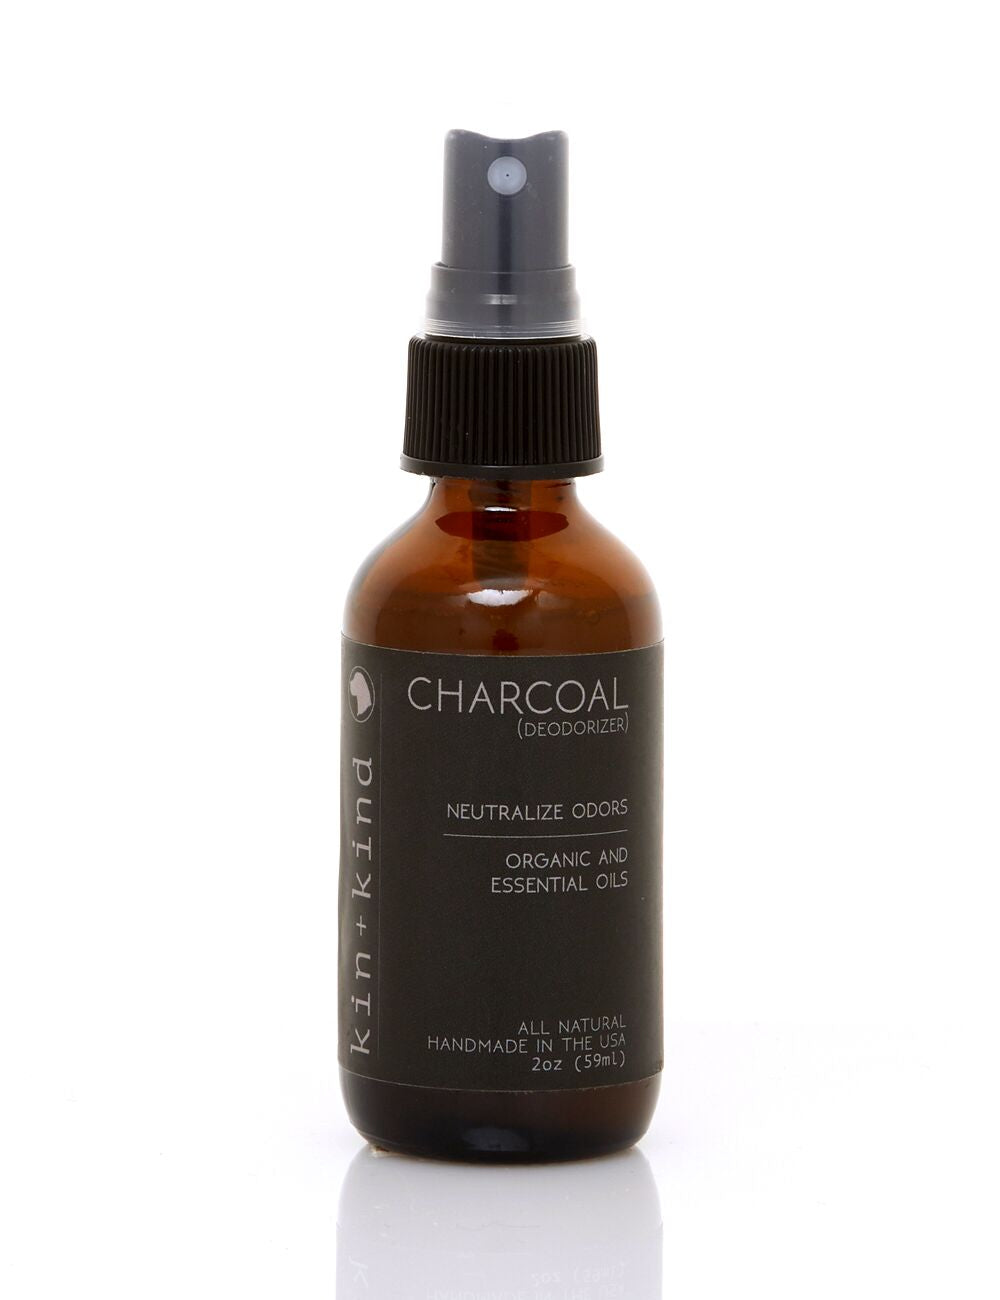 Charcoal Deodorizer